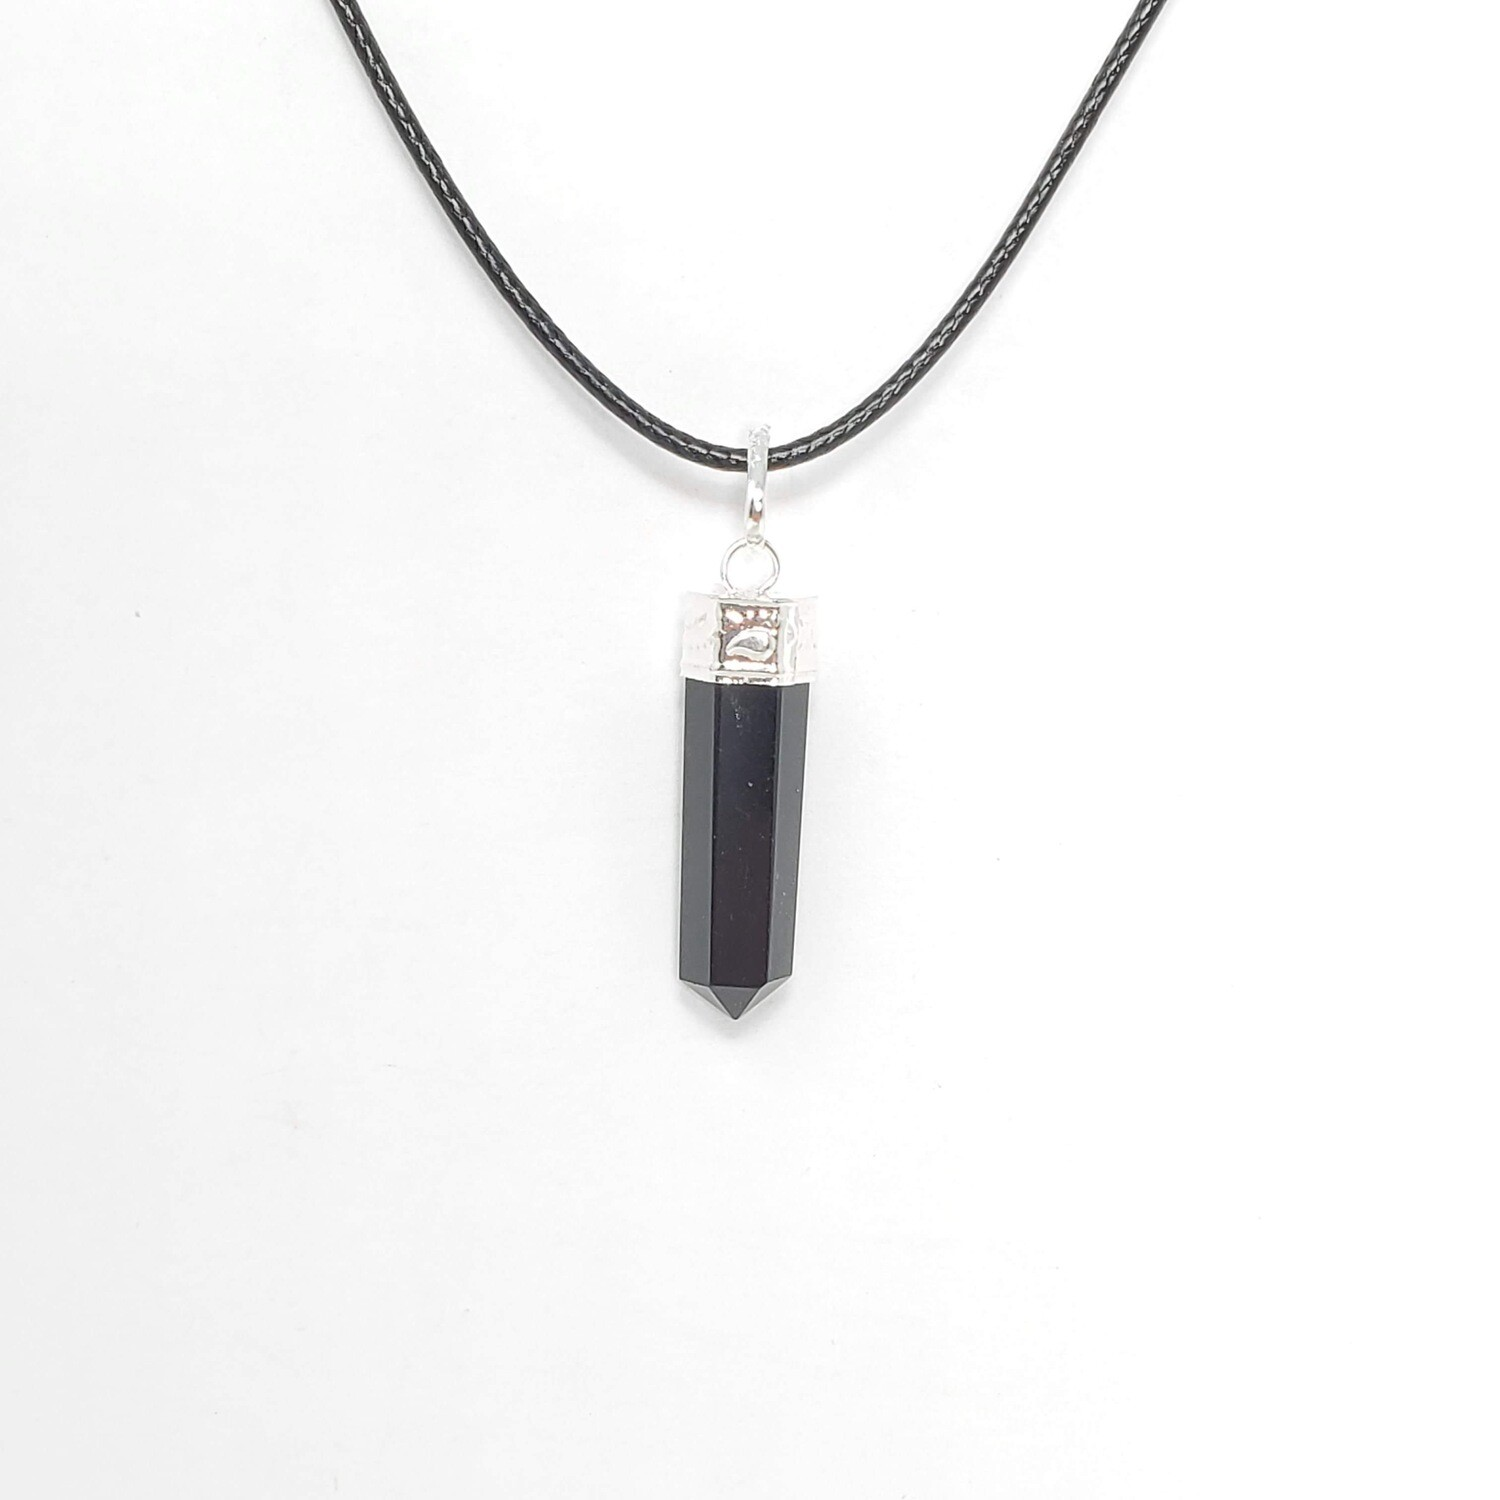 OBSIDIAN PENCIL NECKLACE